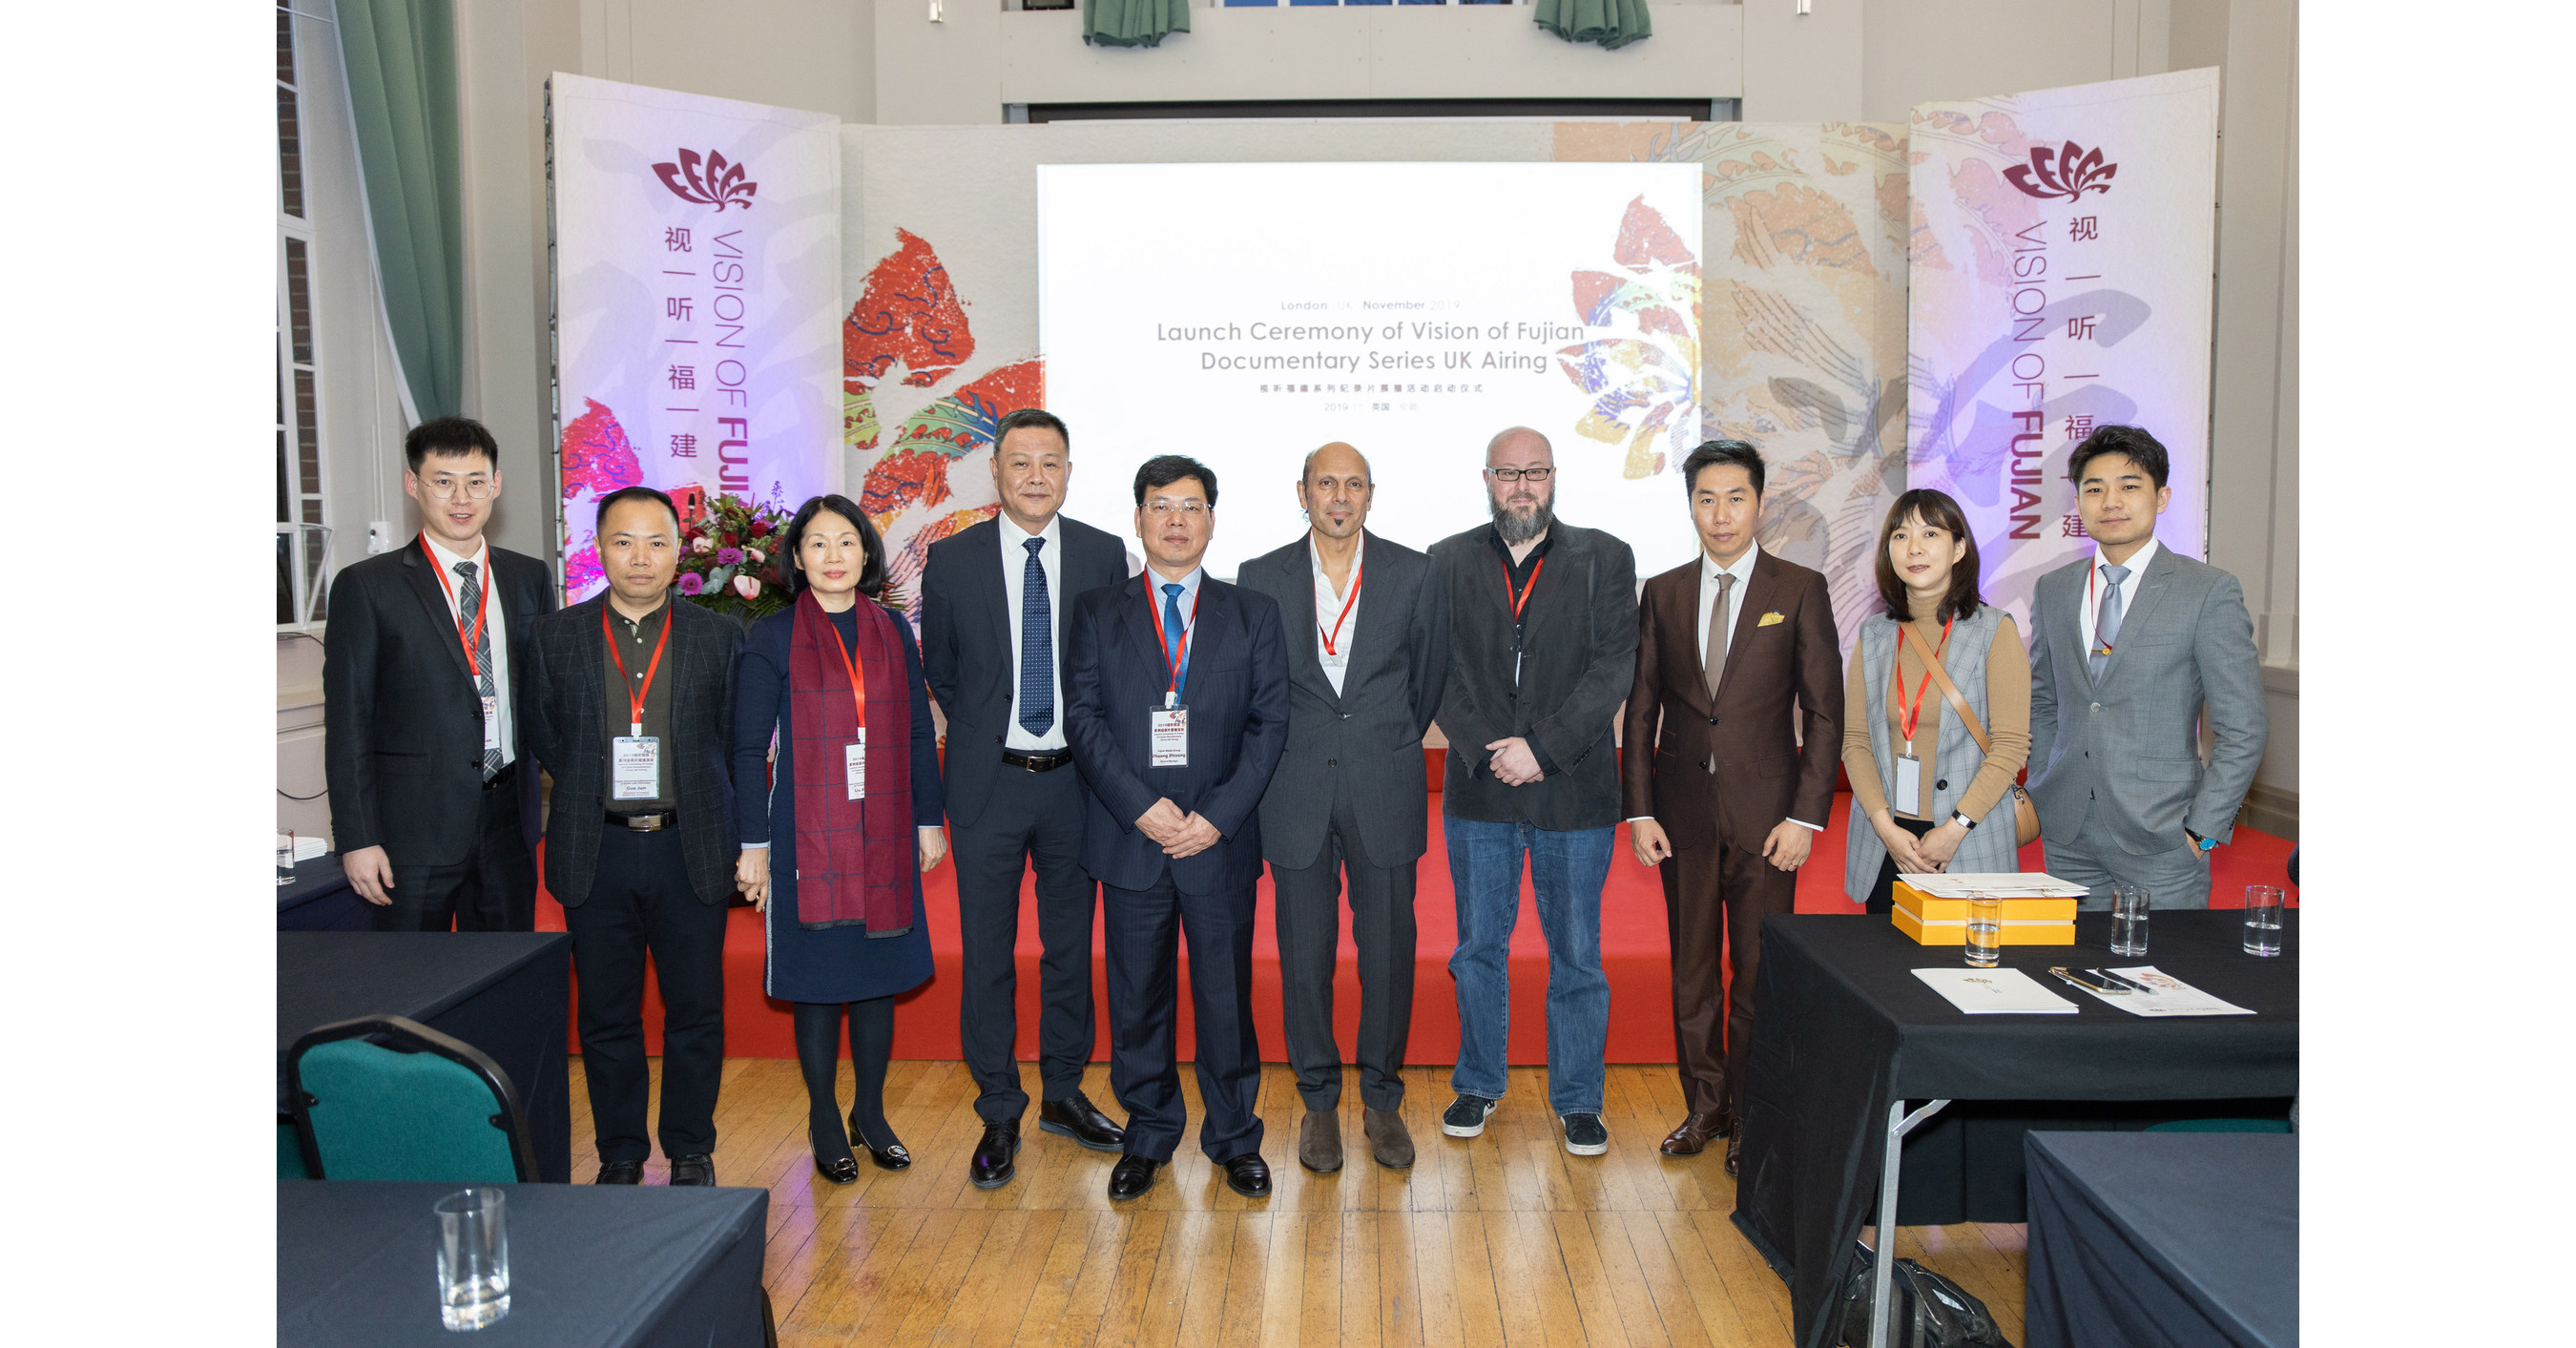 Vision of Fujian Documentary Series Introduced to Europe - PRNewswire